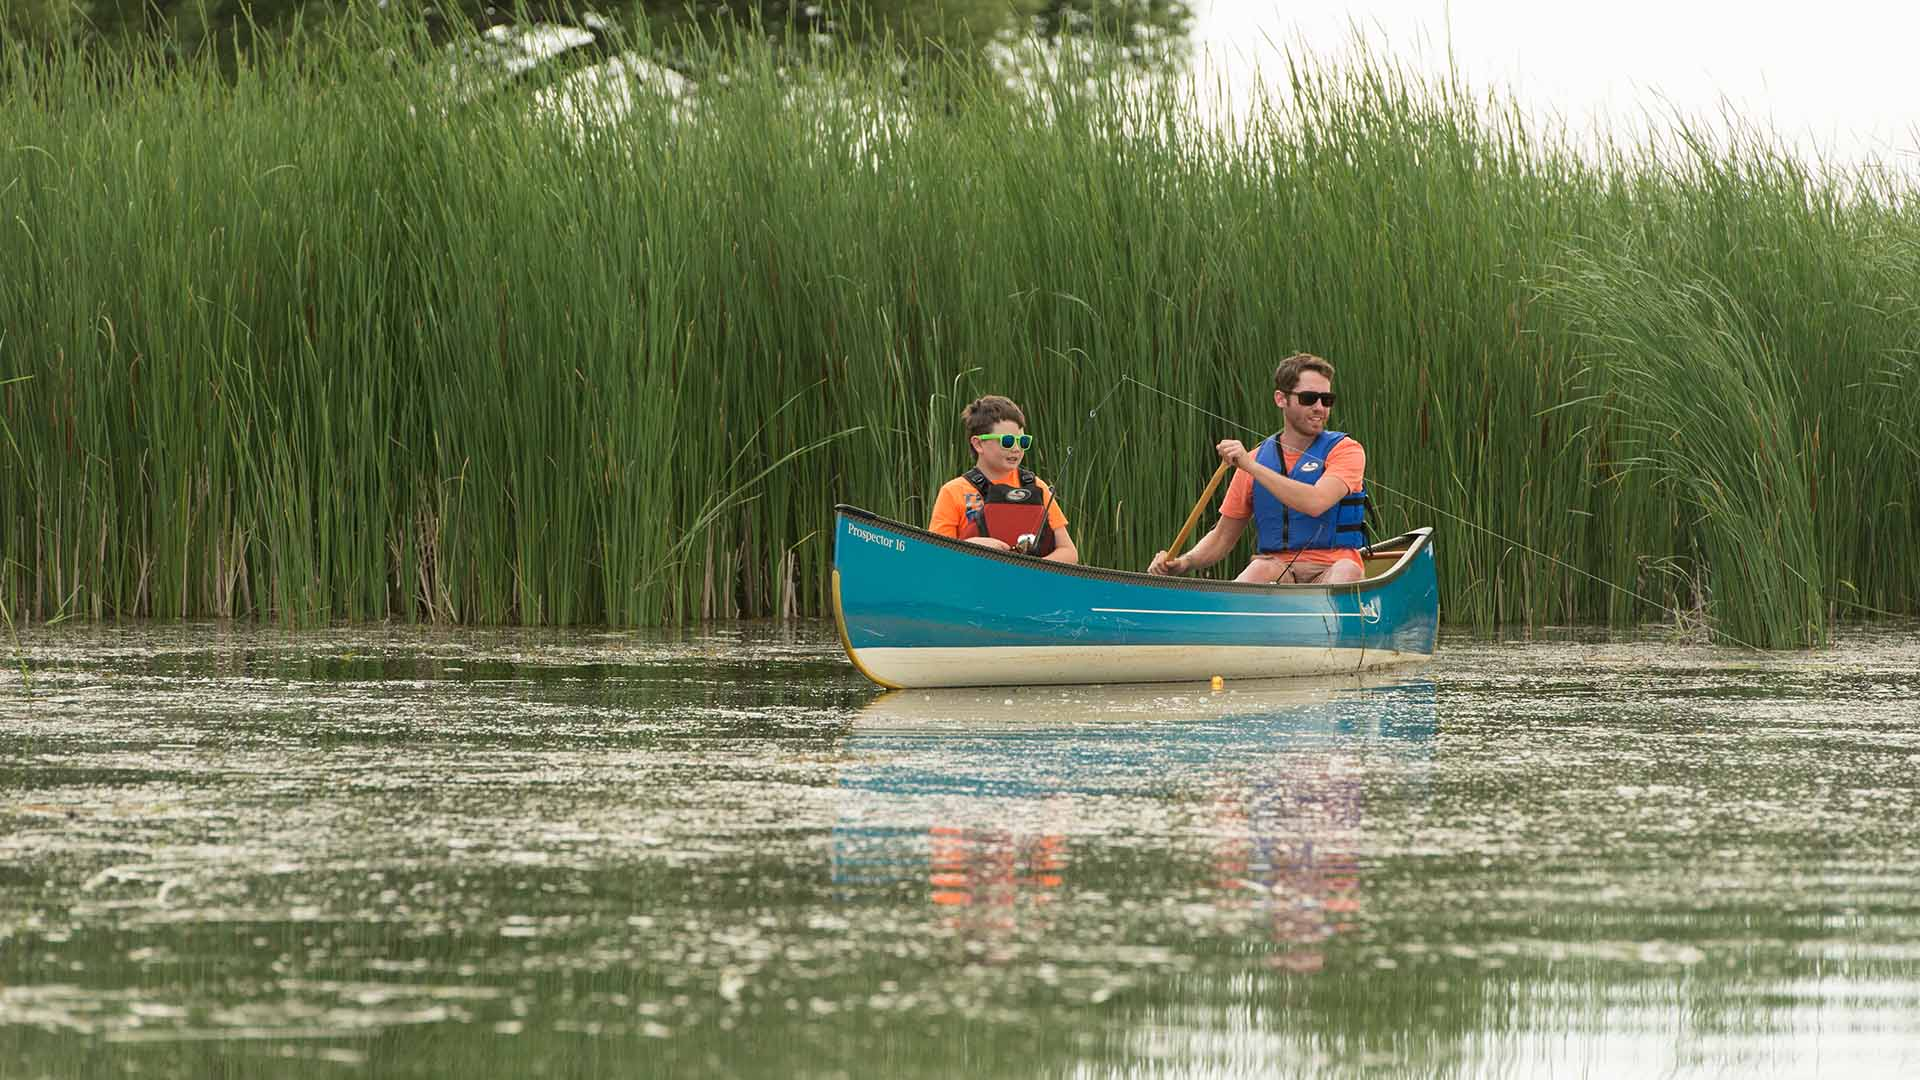 Maclean lake - 10 Amazing Paddle Routes in Orillia and Lake Country